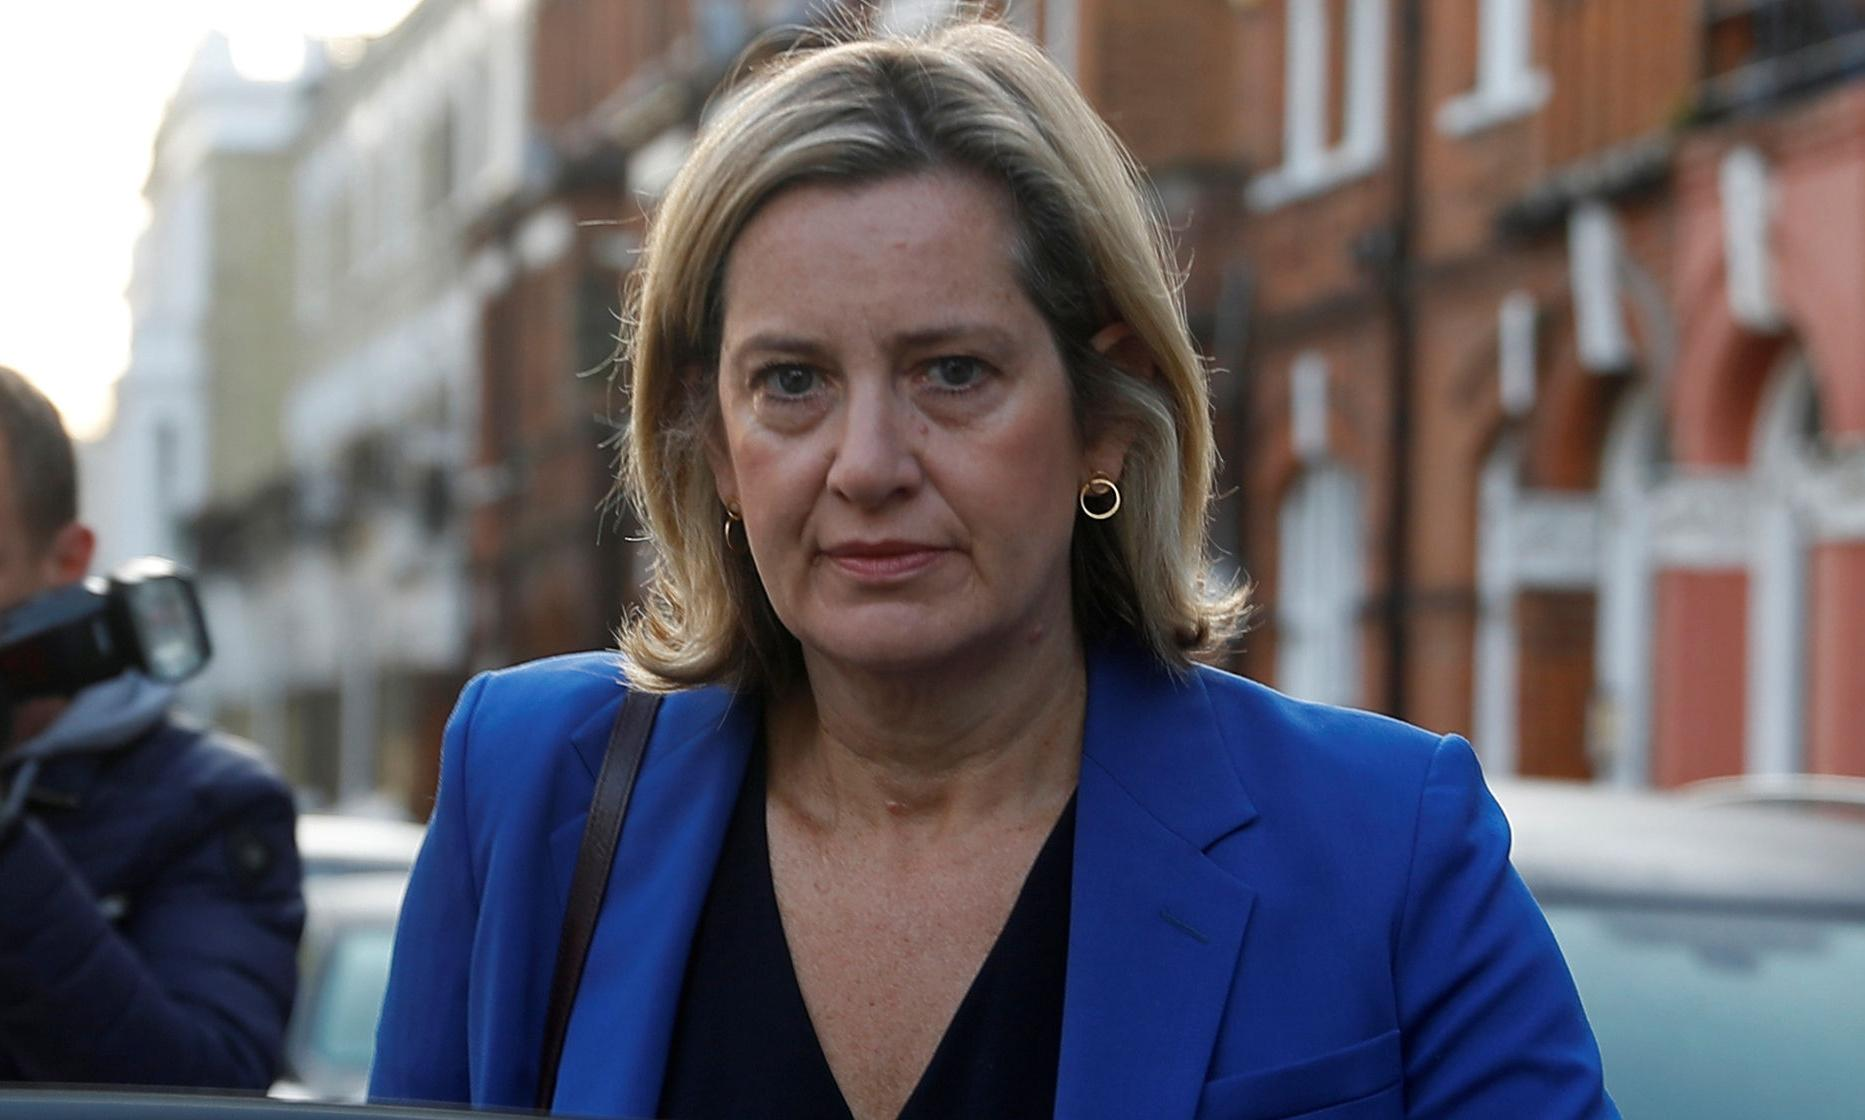 Amber Rudd calls for proportional voting system to be discussed